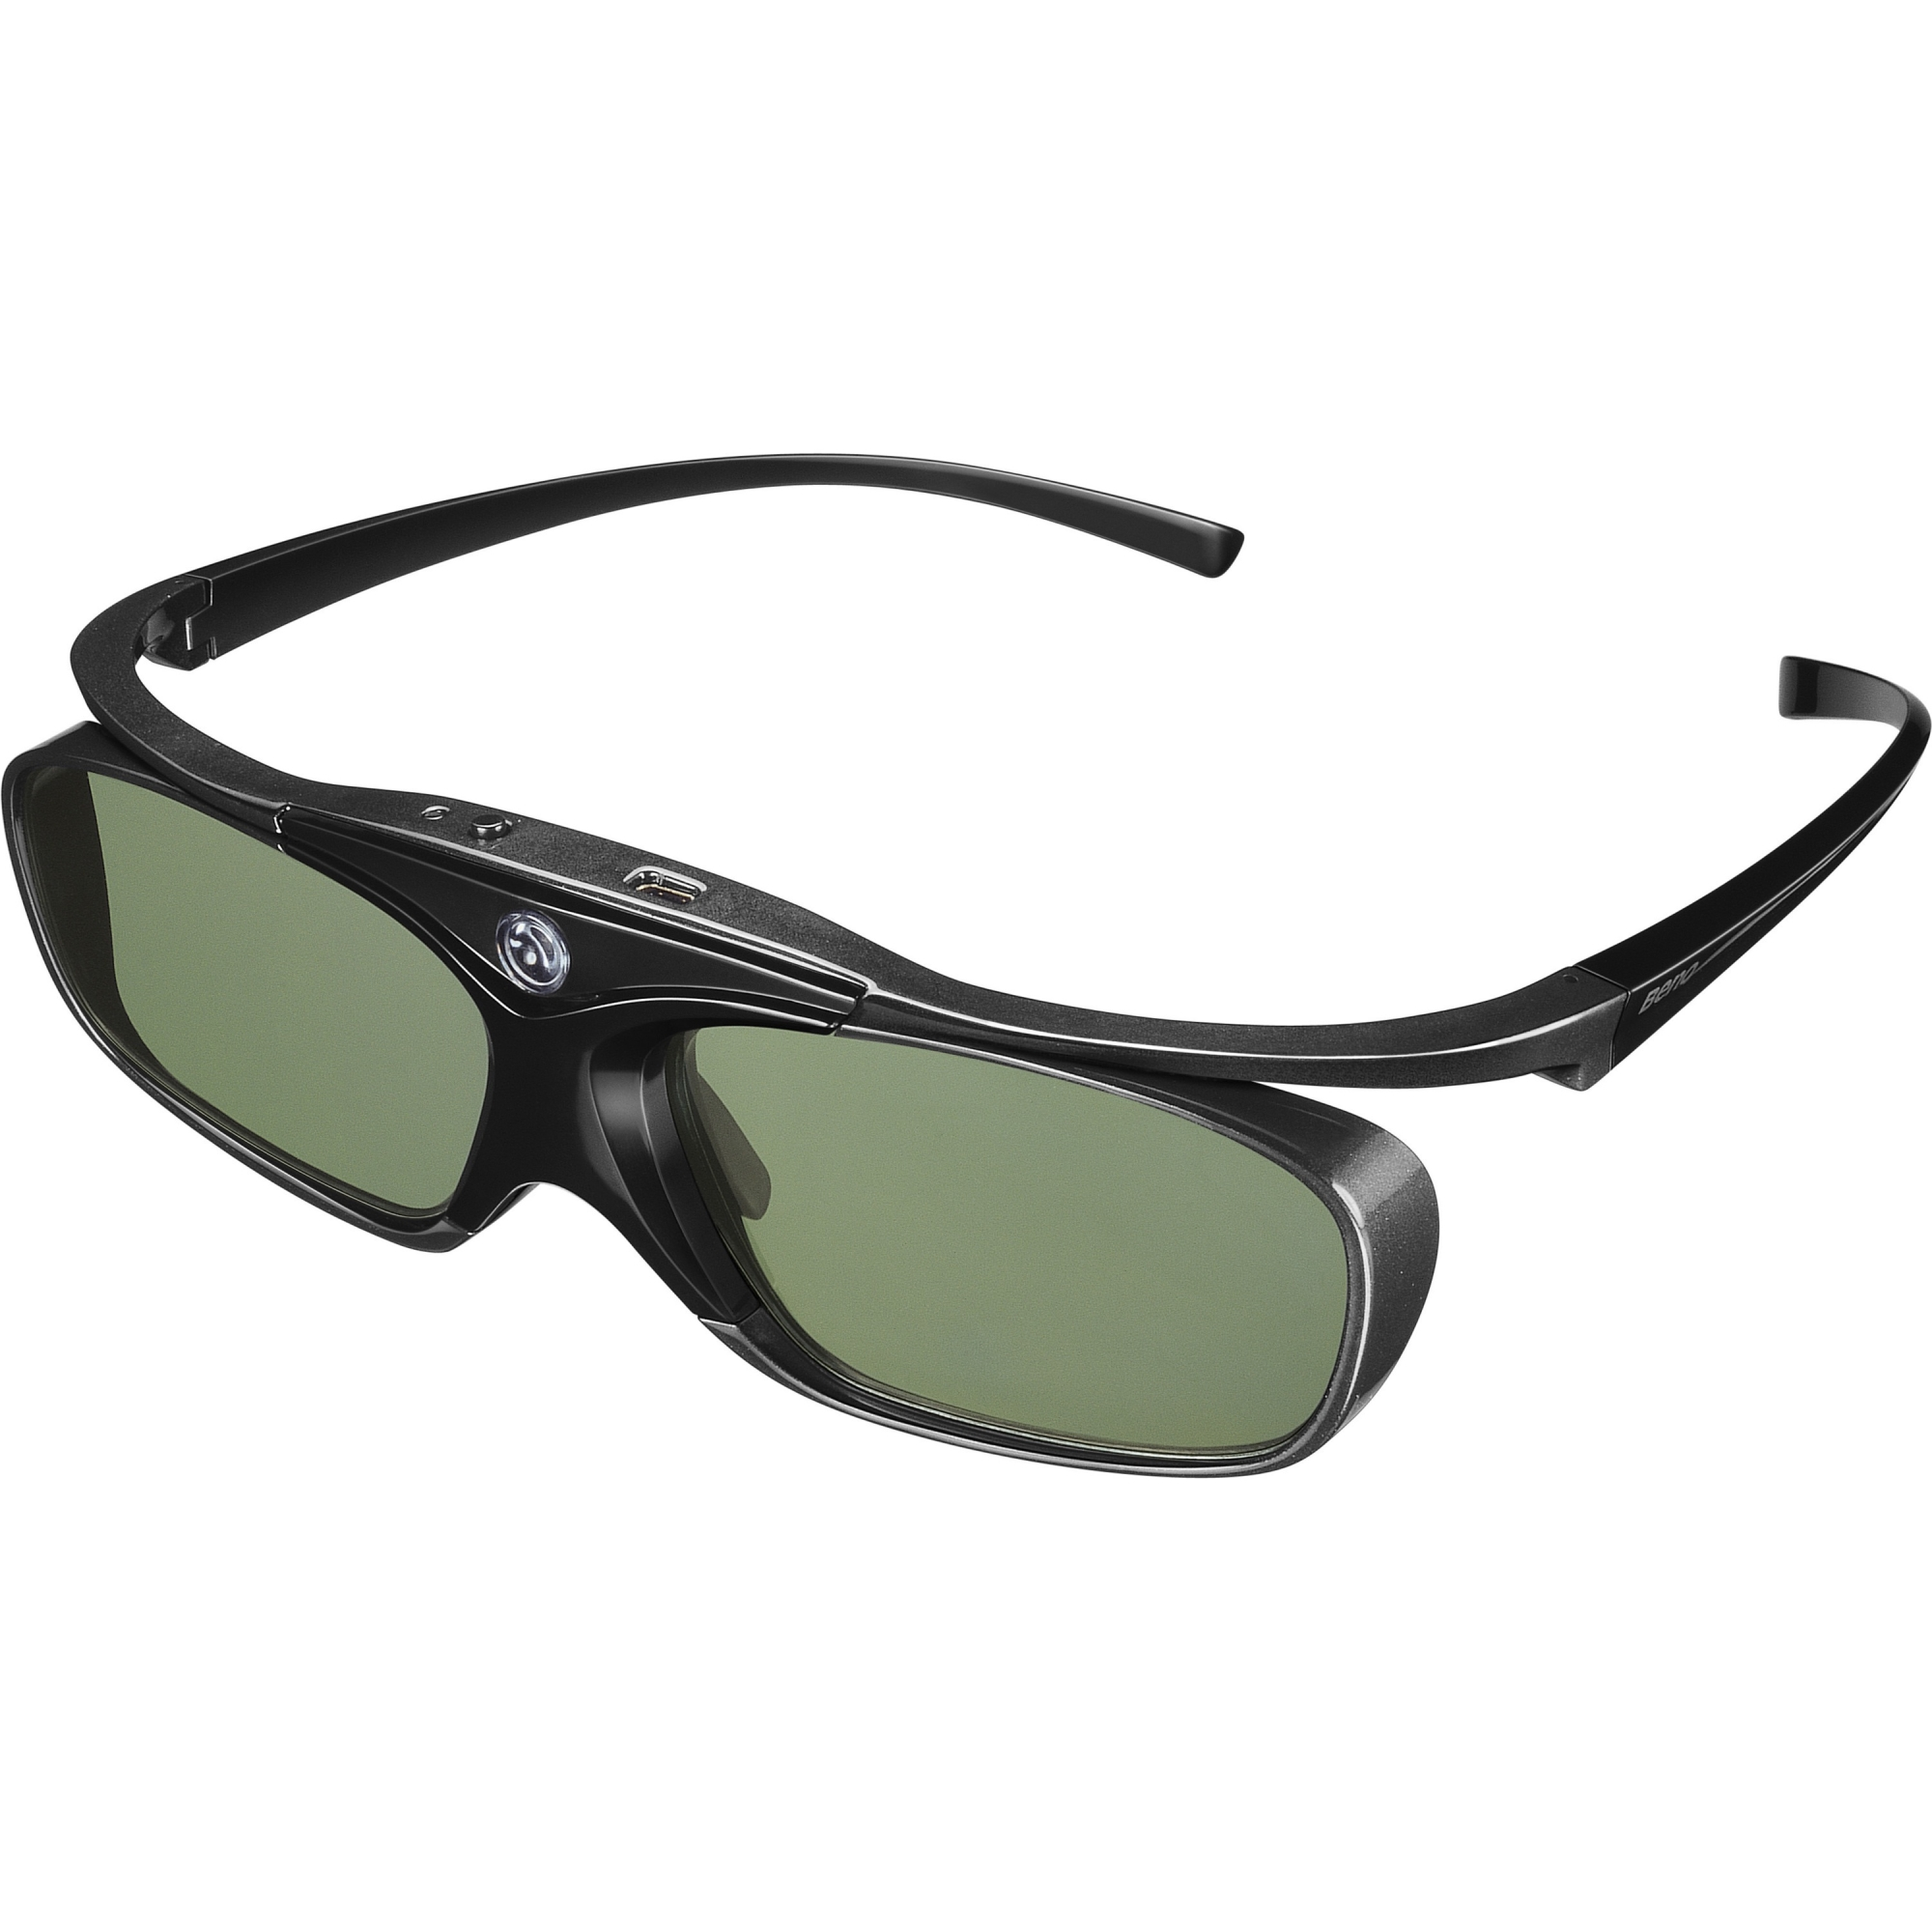 3D Glasses - DGD5 - For Projector - Shutter - 26.25 ft - 1:1200 - DLP Link - Battery Rechargeable